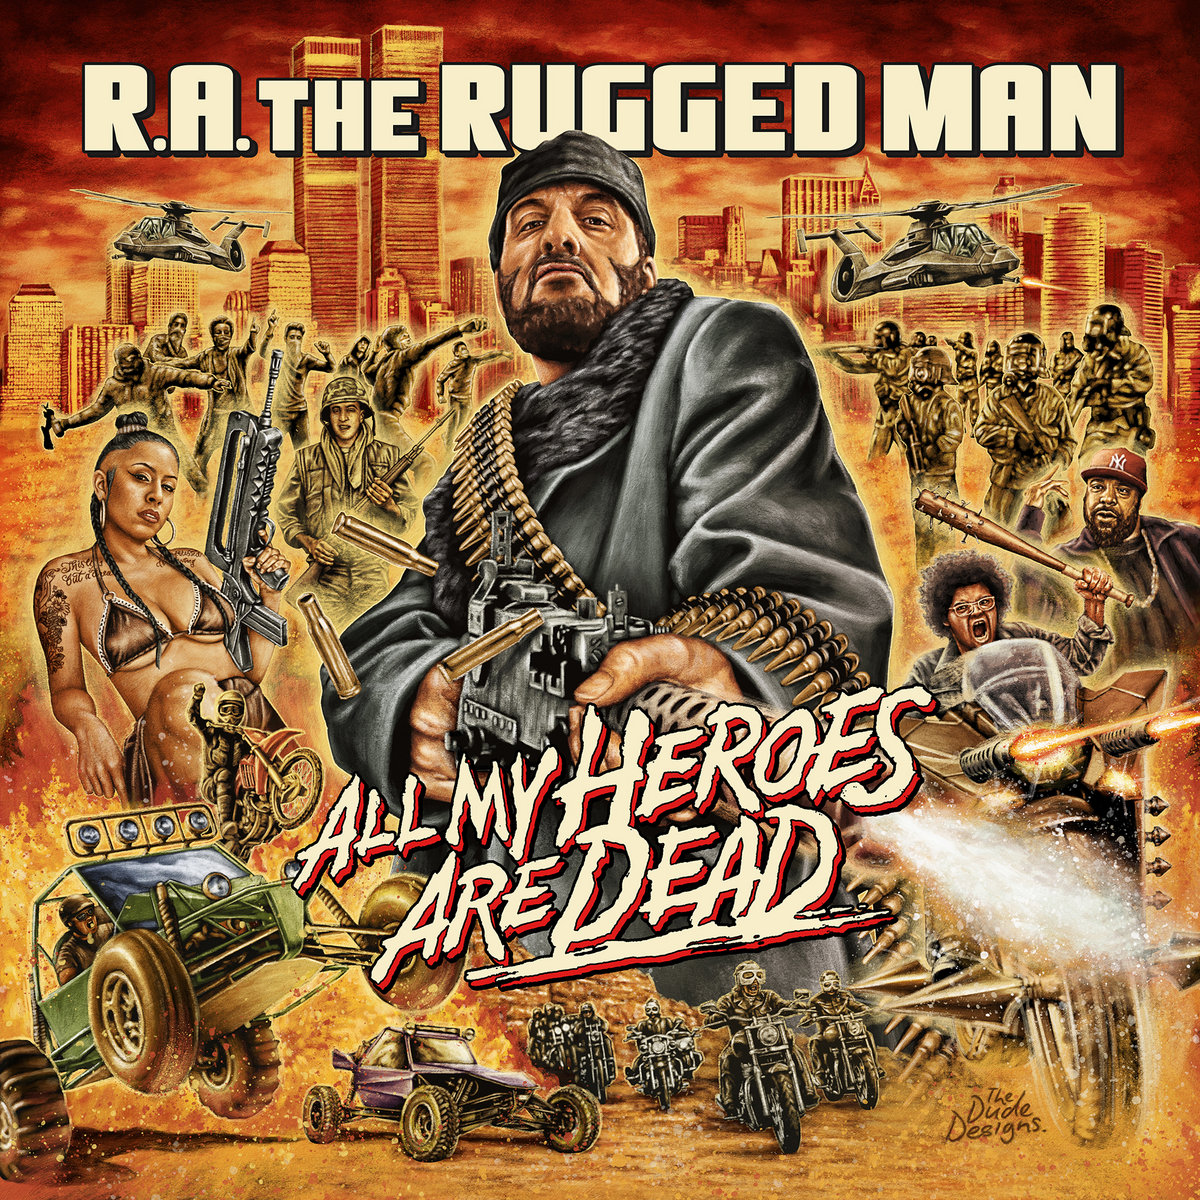 All_my_heroes_are_dead_r.a._the_rugged_man